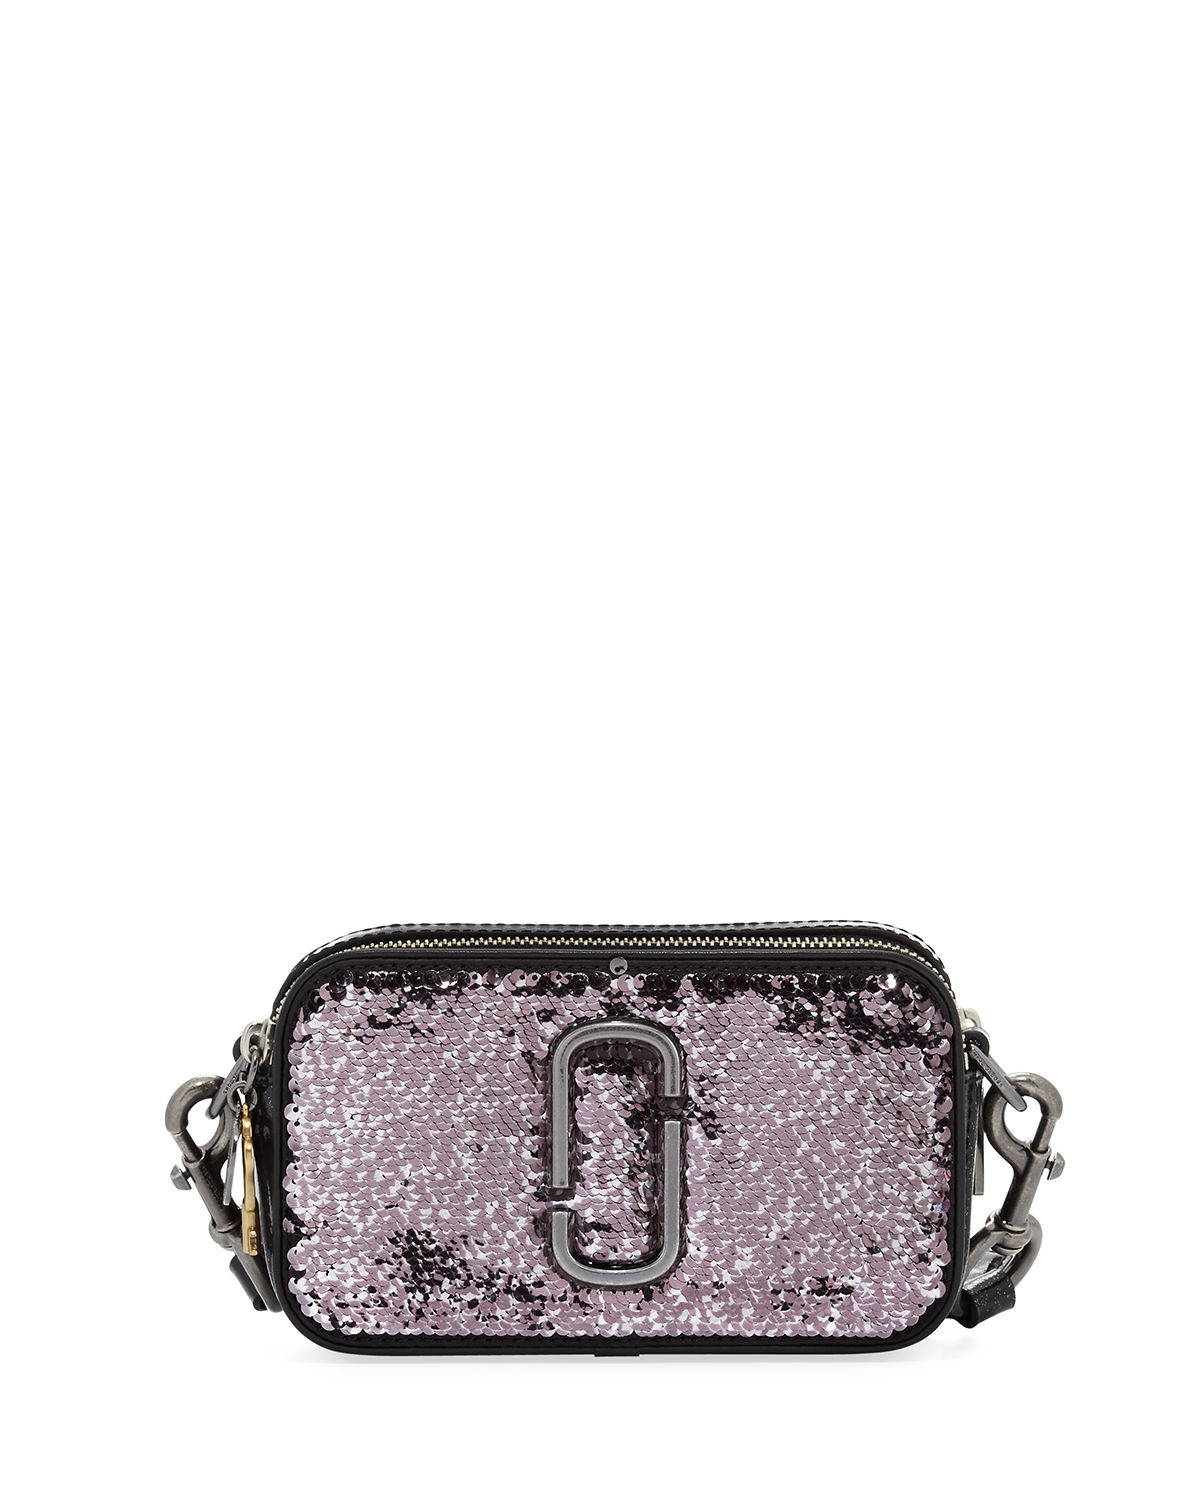 Sequin Snapshot Crossbody Bag